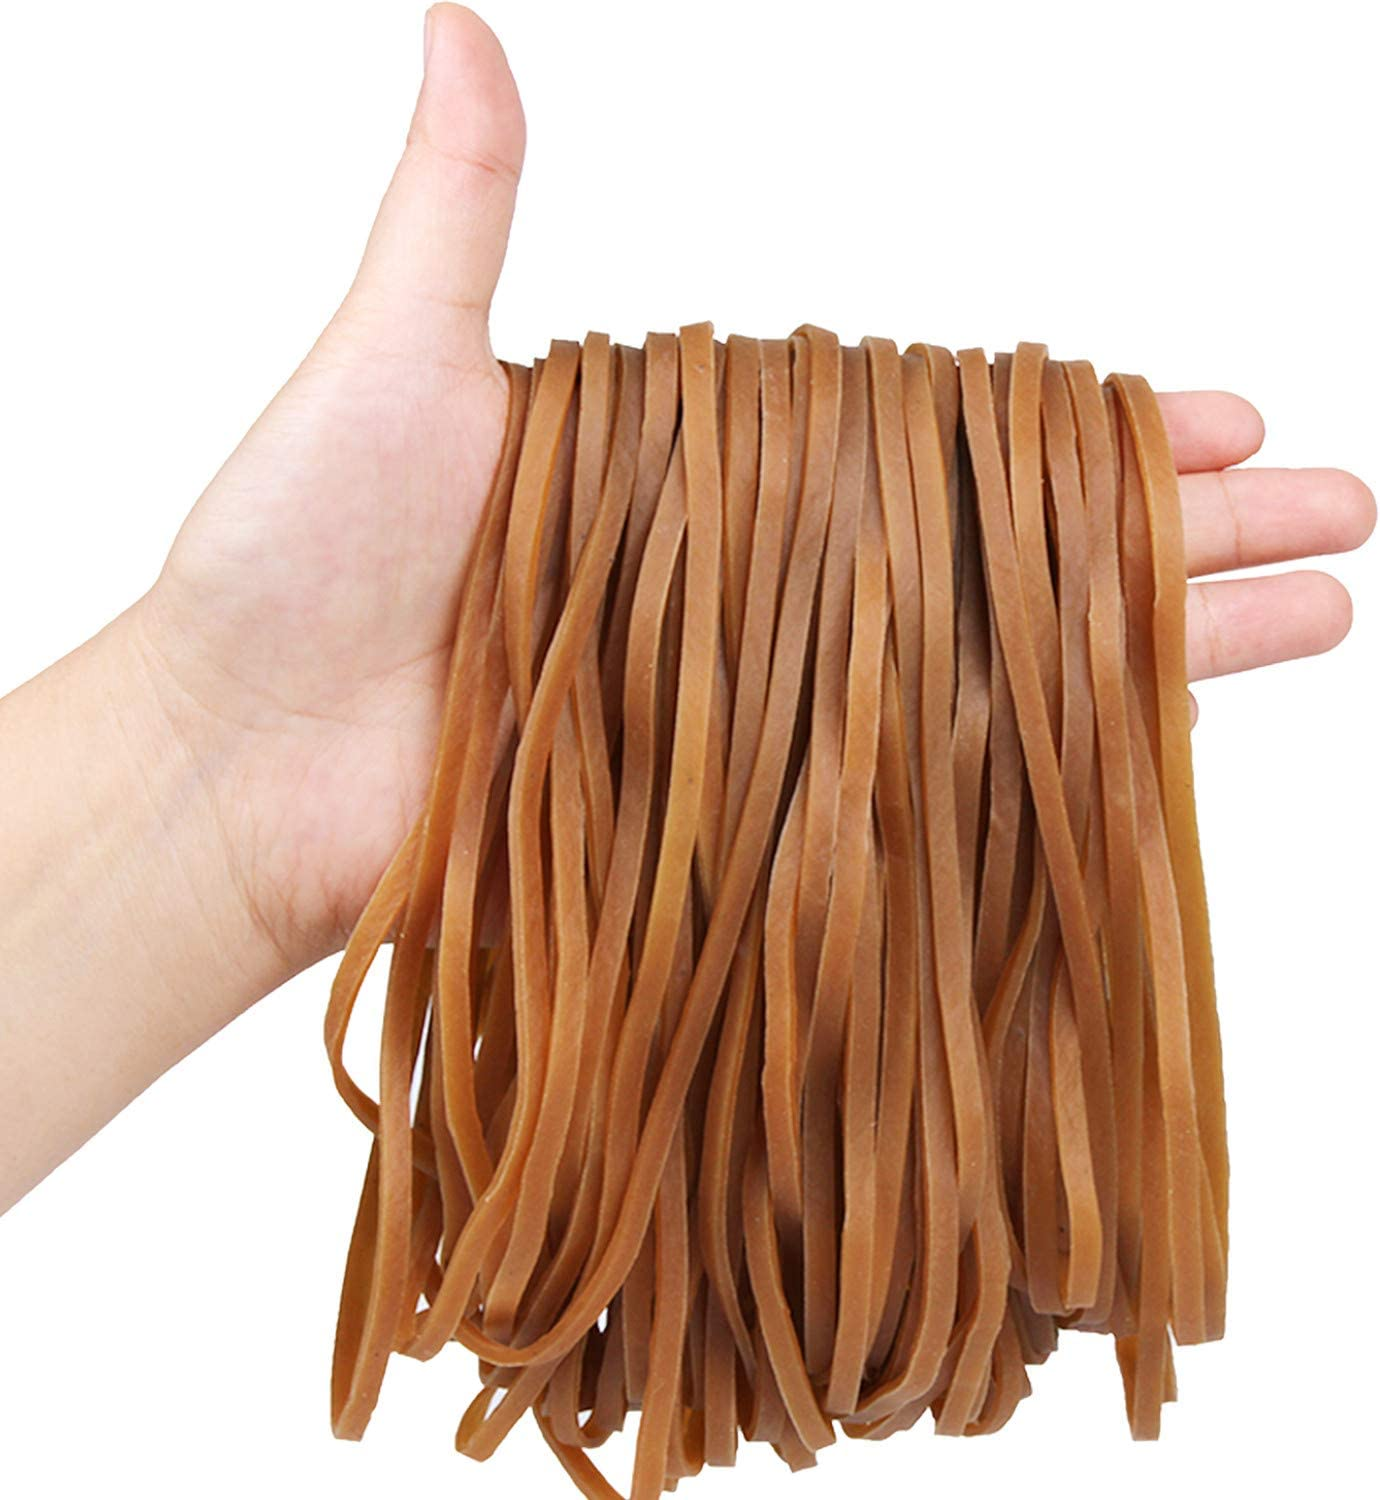 Large Strong Heavy Duty Elastic Rubber Bands pack of 25 Bands